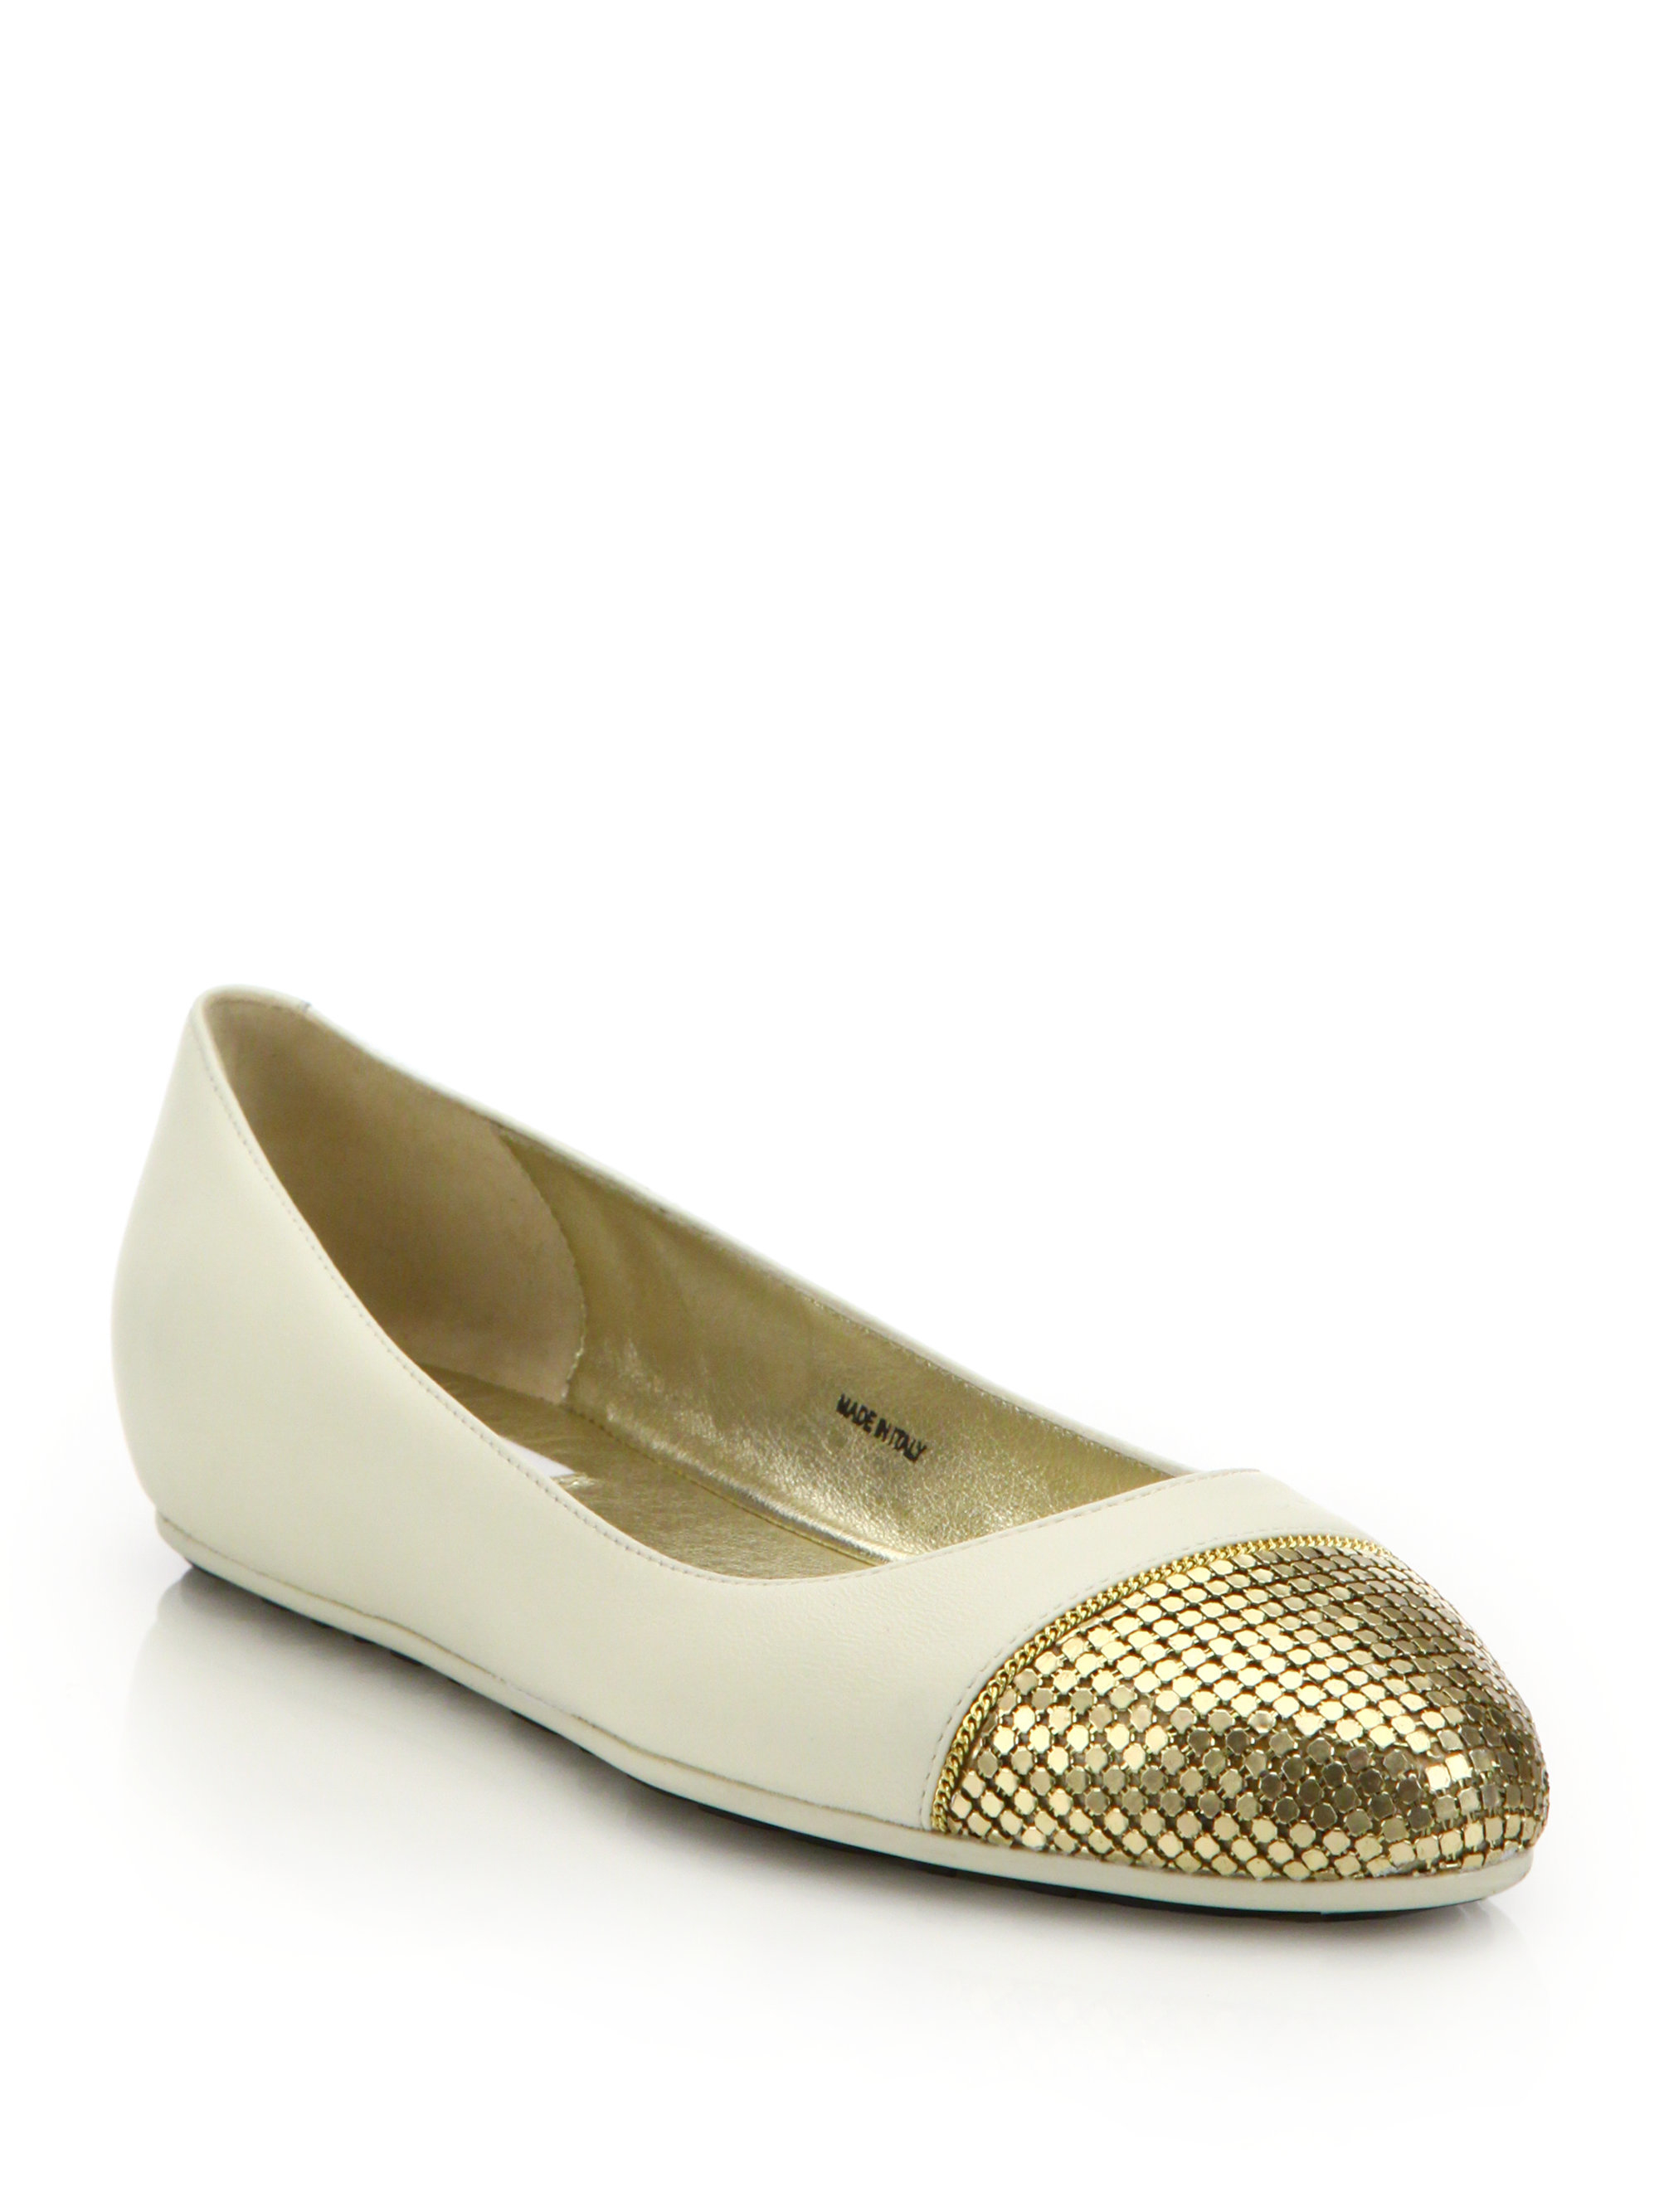 f8c68f5e78e6 ... order lyst jimmy choo waine chainmail leather ballet flats in metallic  7ad8b 95040